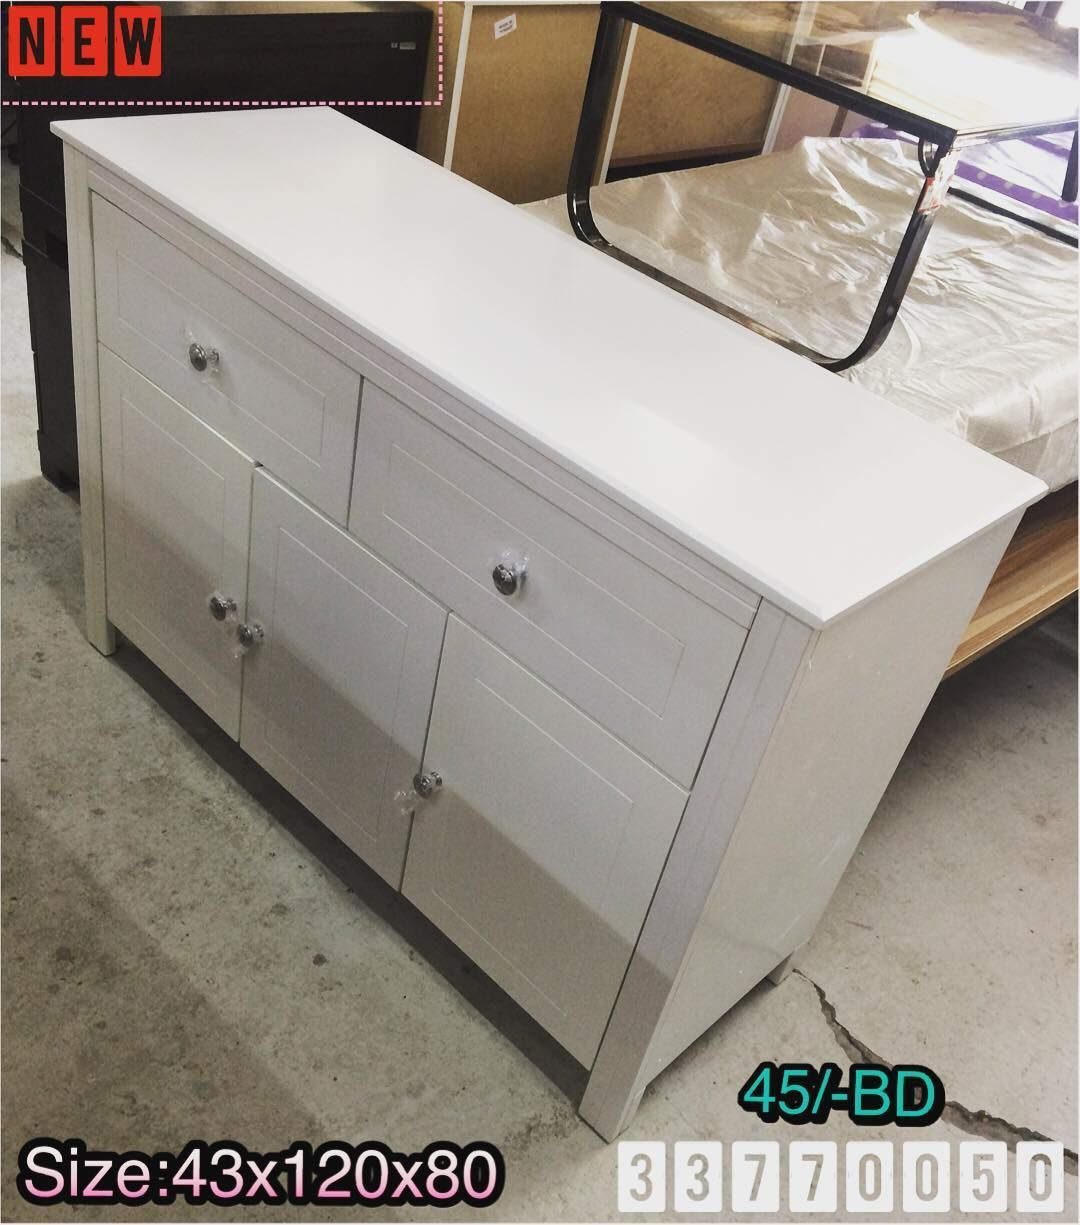 For Sale Side Cabinet Size 43x120x80 White Color New Made In Malaysia Price 45 Bd للبيع كبت خشب ادراج لون ابيض جديد Side Cabinet Cabinet Color